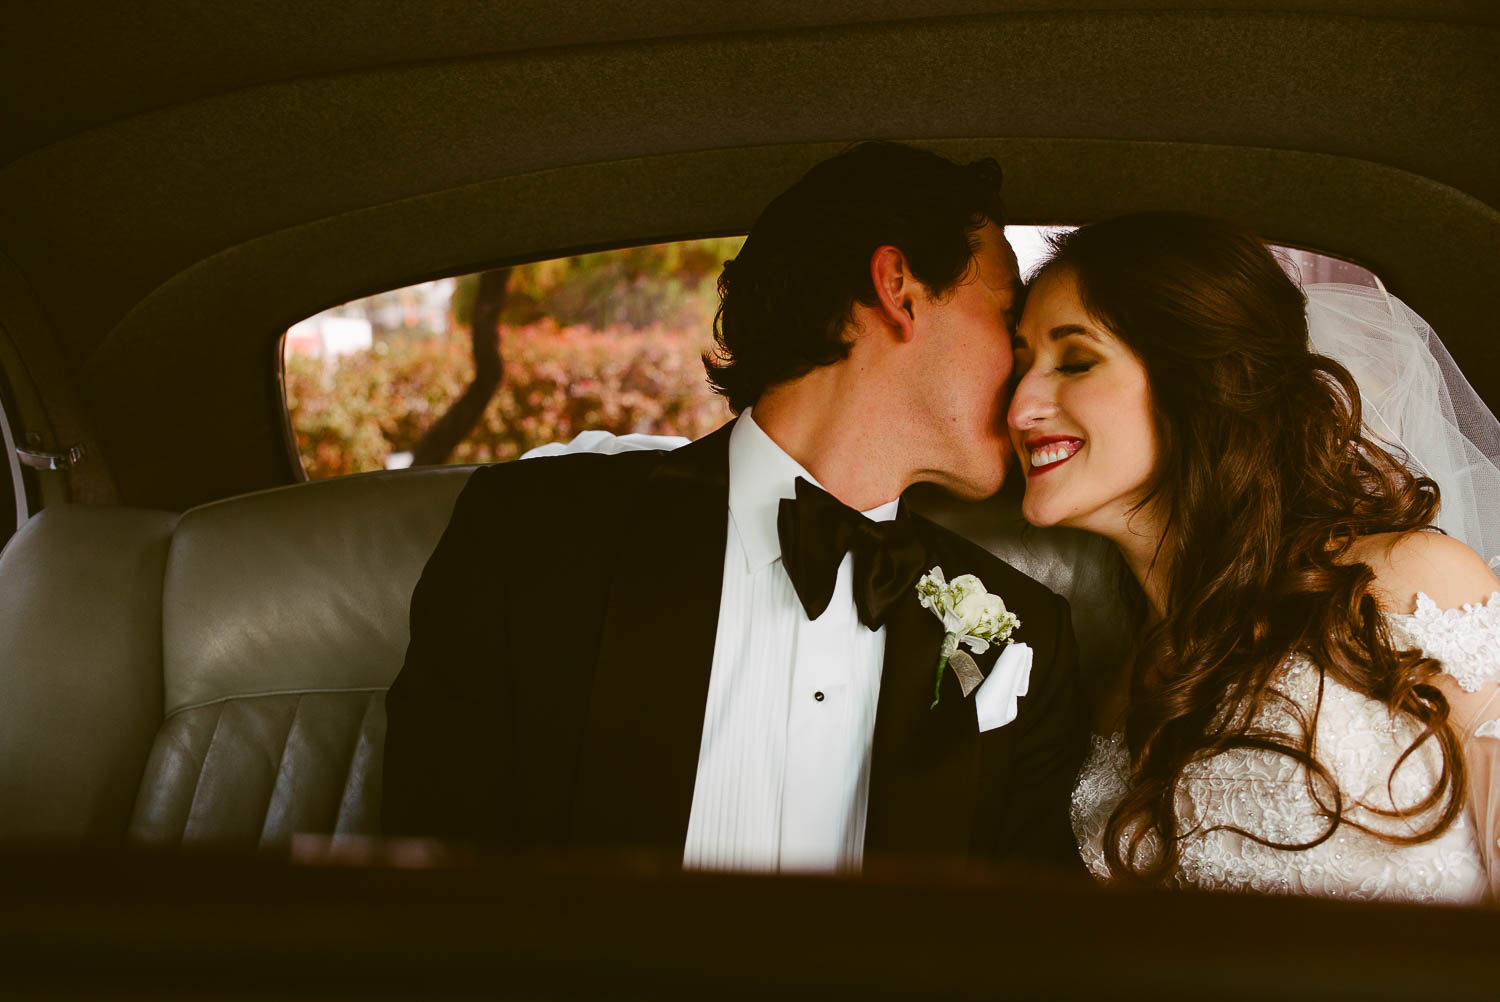 Bride and groom share a moment kiss check to cheek in back of antique car on wedding day la-cantera-resort-wedding-photographer-philip-thomas